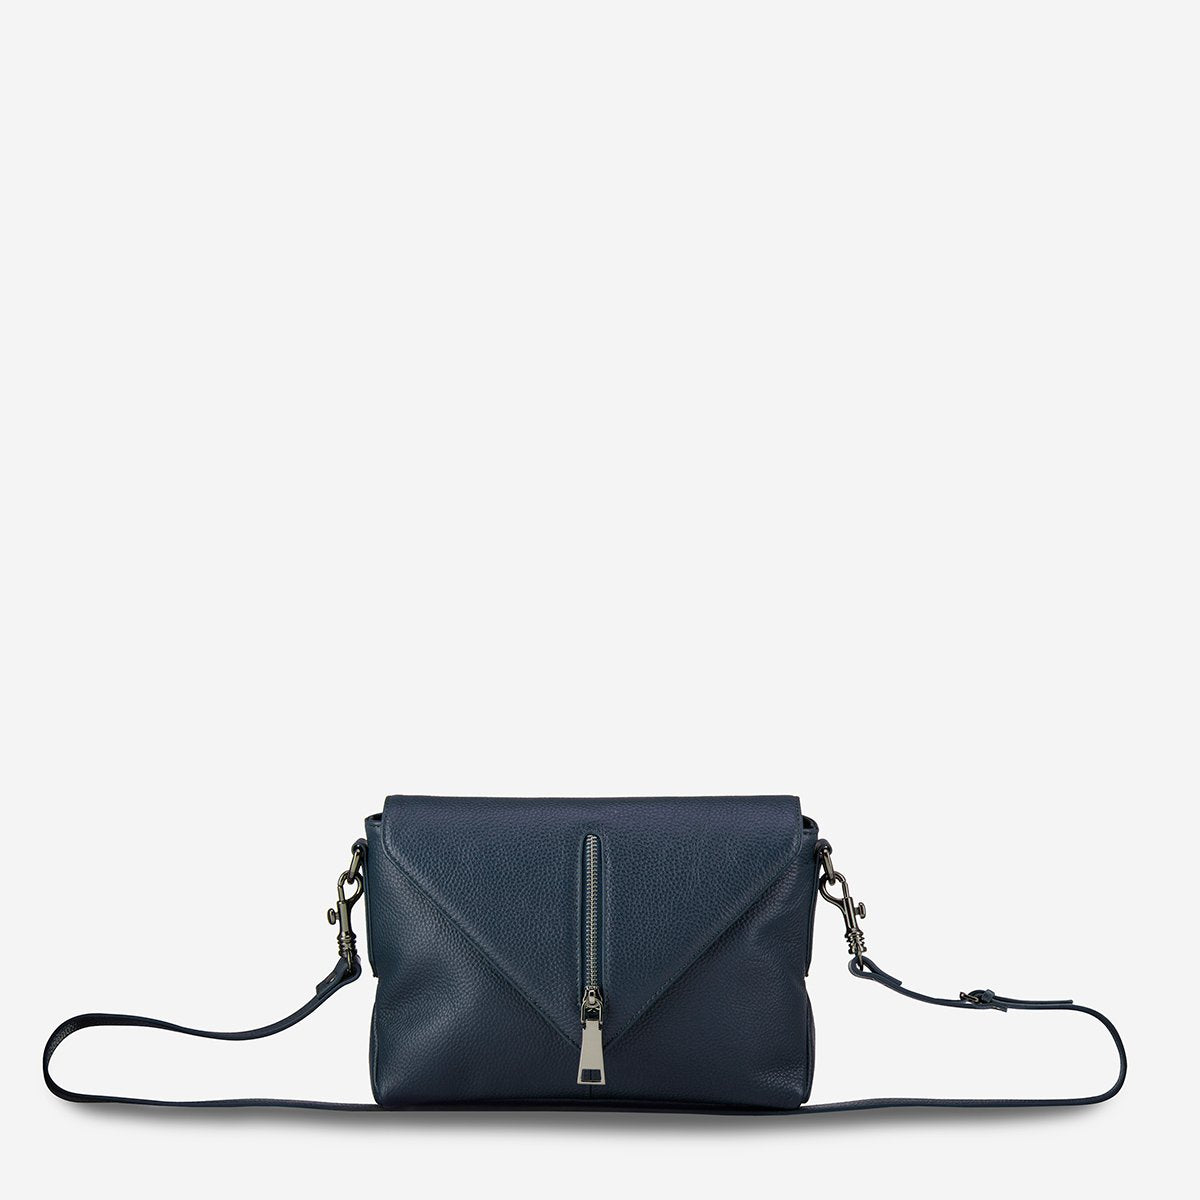 STATUS ANXIETY EXILE BAG NAVY BLUE